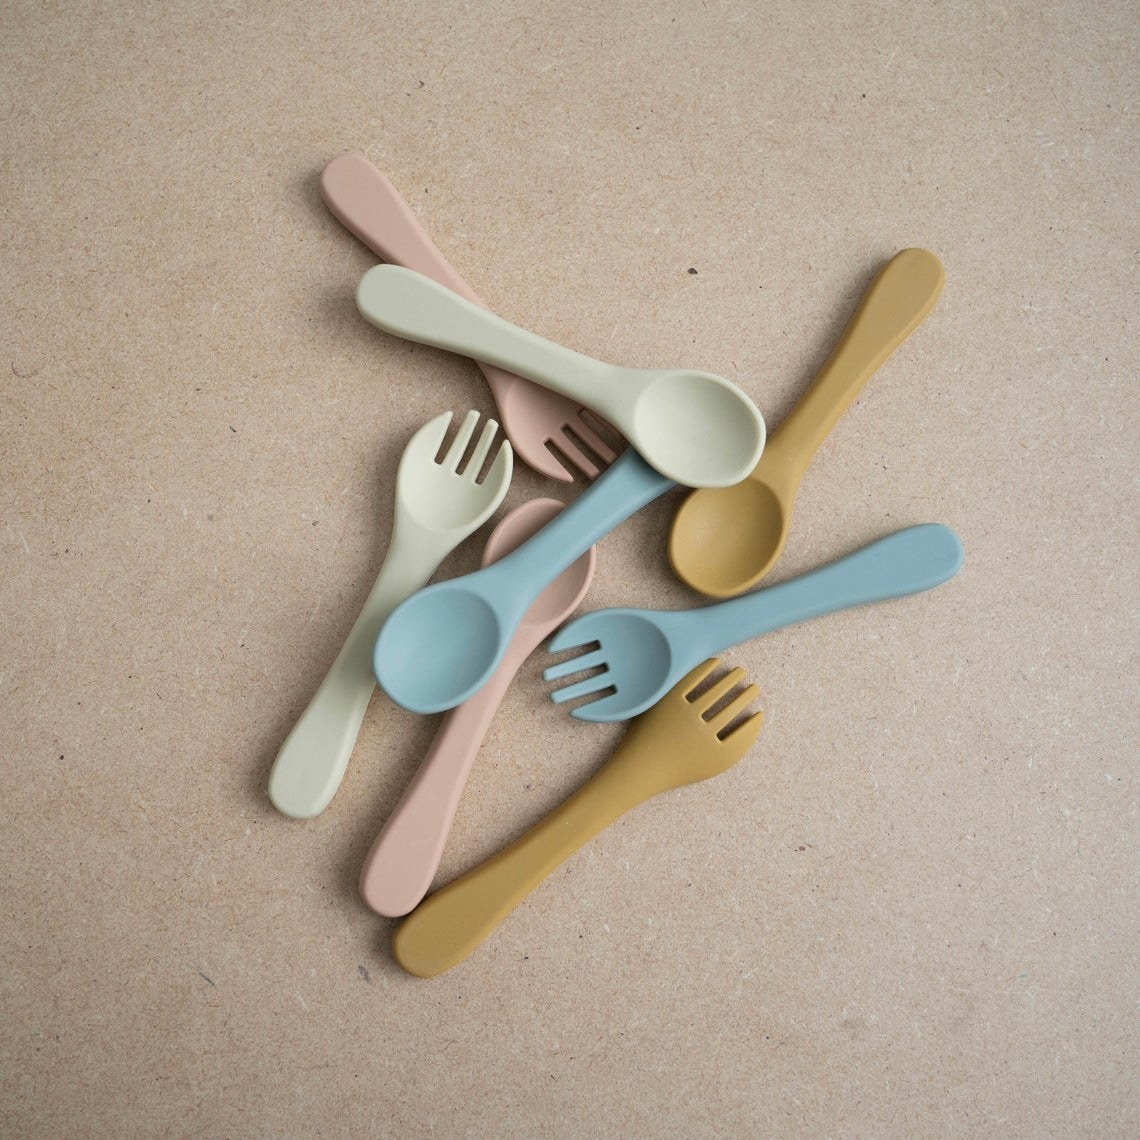 Several soft forks and spoons plopped together on a table